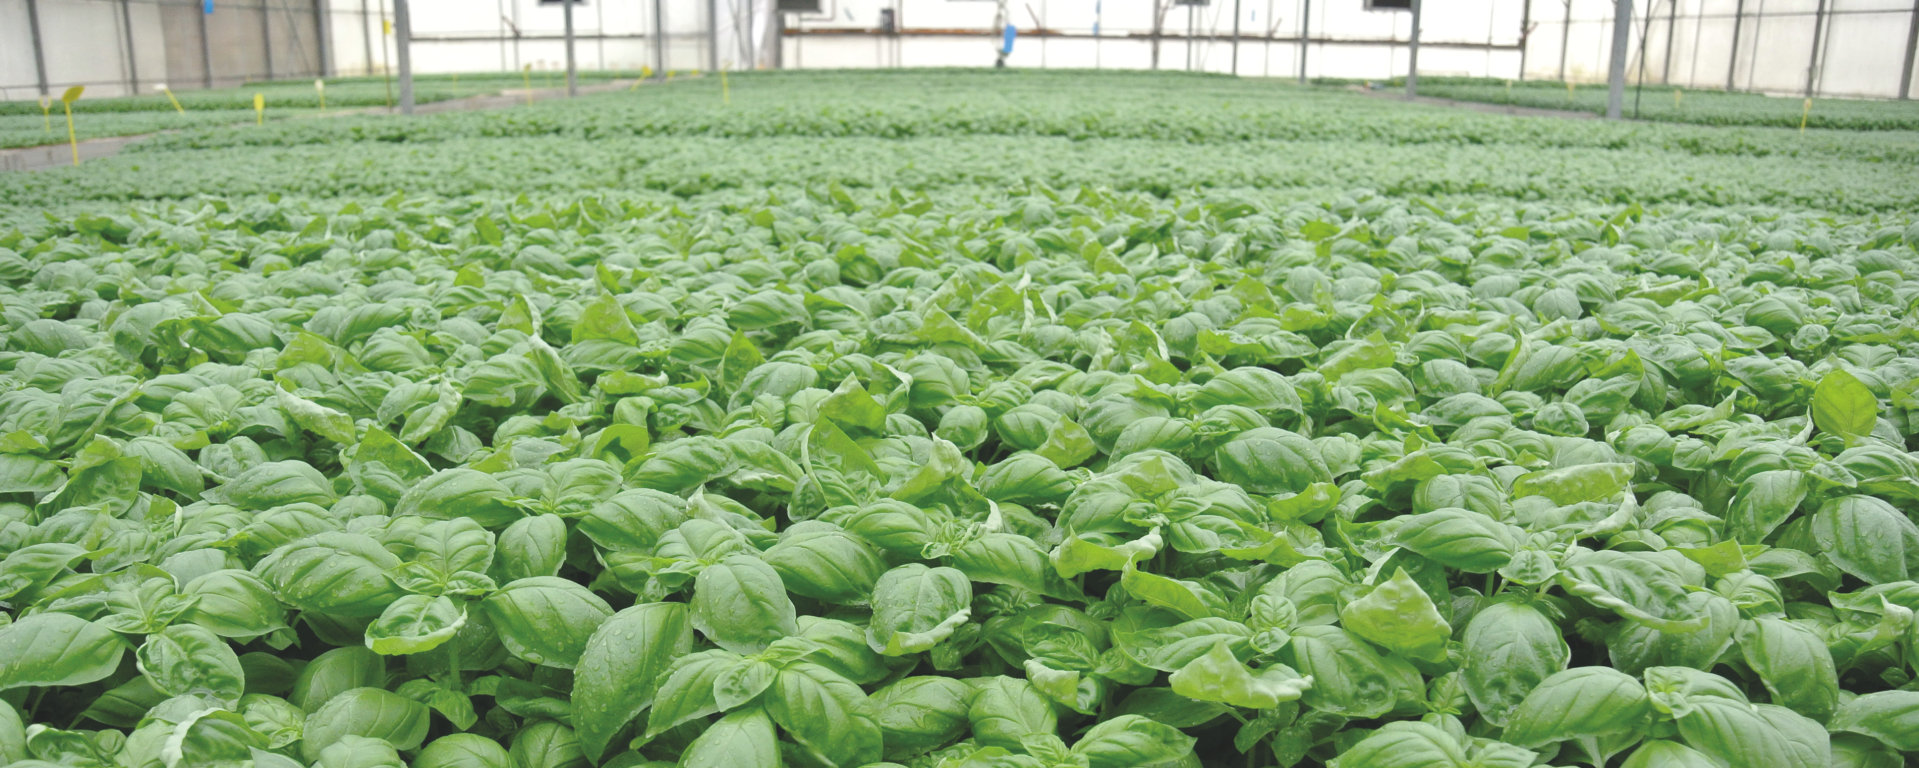 Ambra Elettronica´s: Italian Basil grows quicker and healthier by replacing HPS with Horticultural LED lighting using OSRAM's Oslon